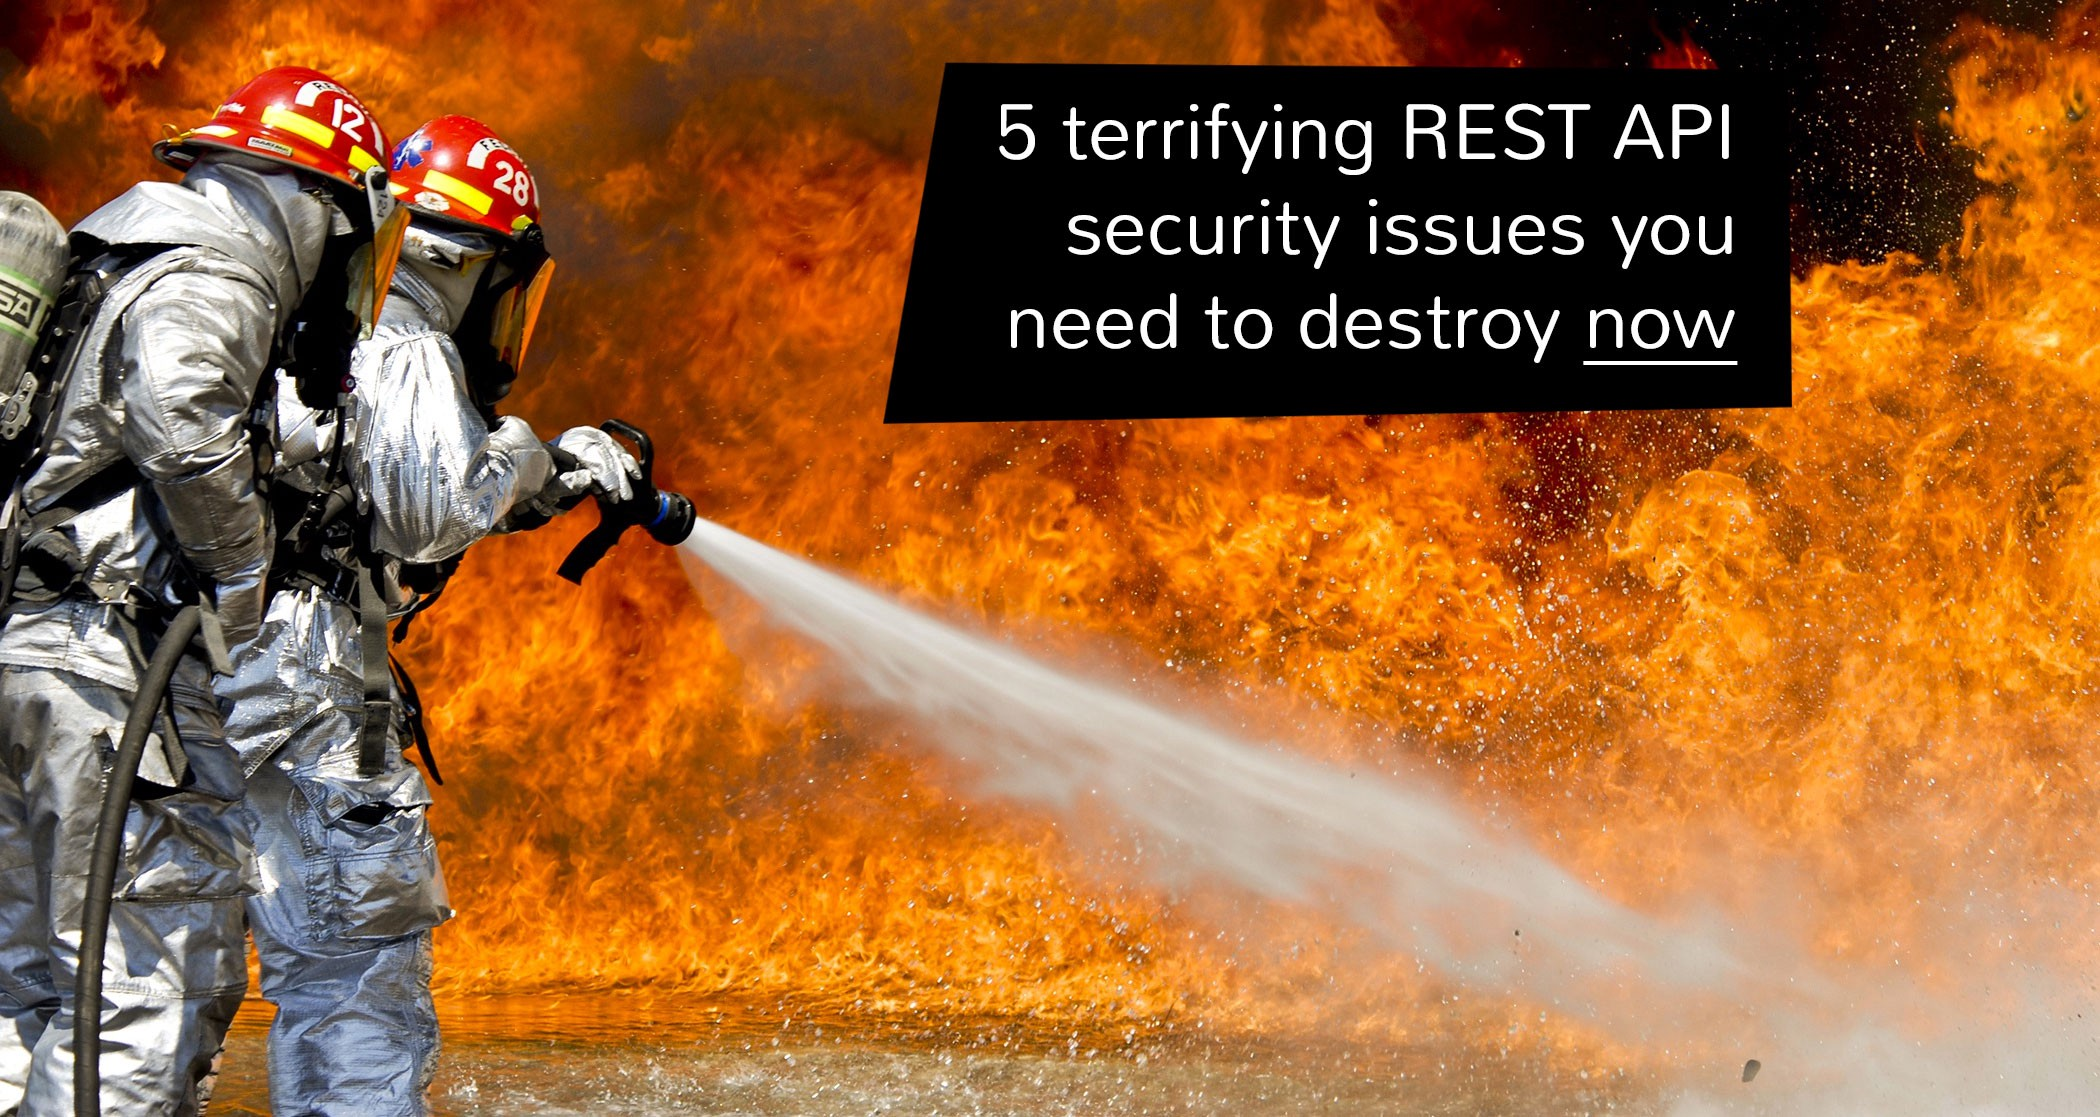 5 Terrifying REST API security issues you need to destroy now